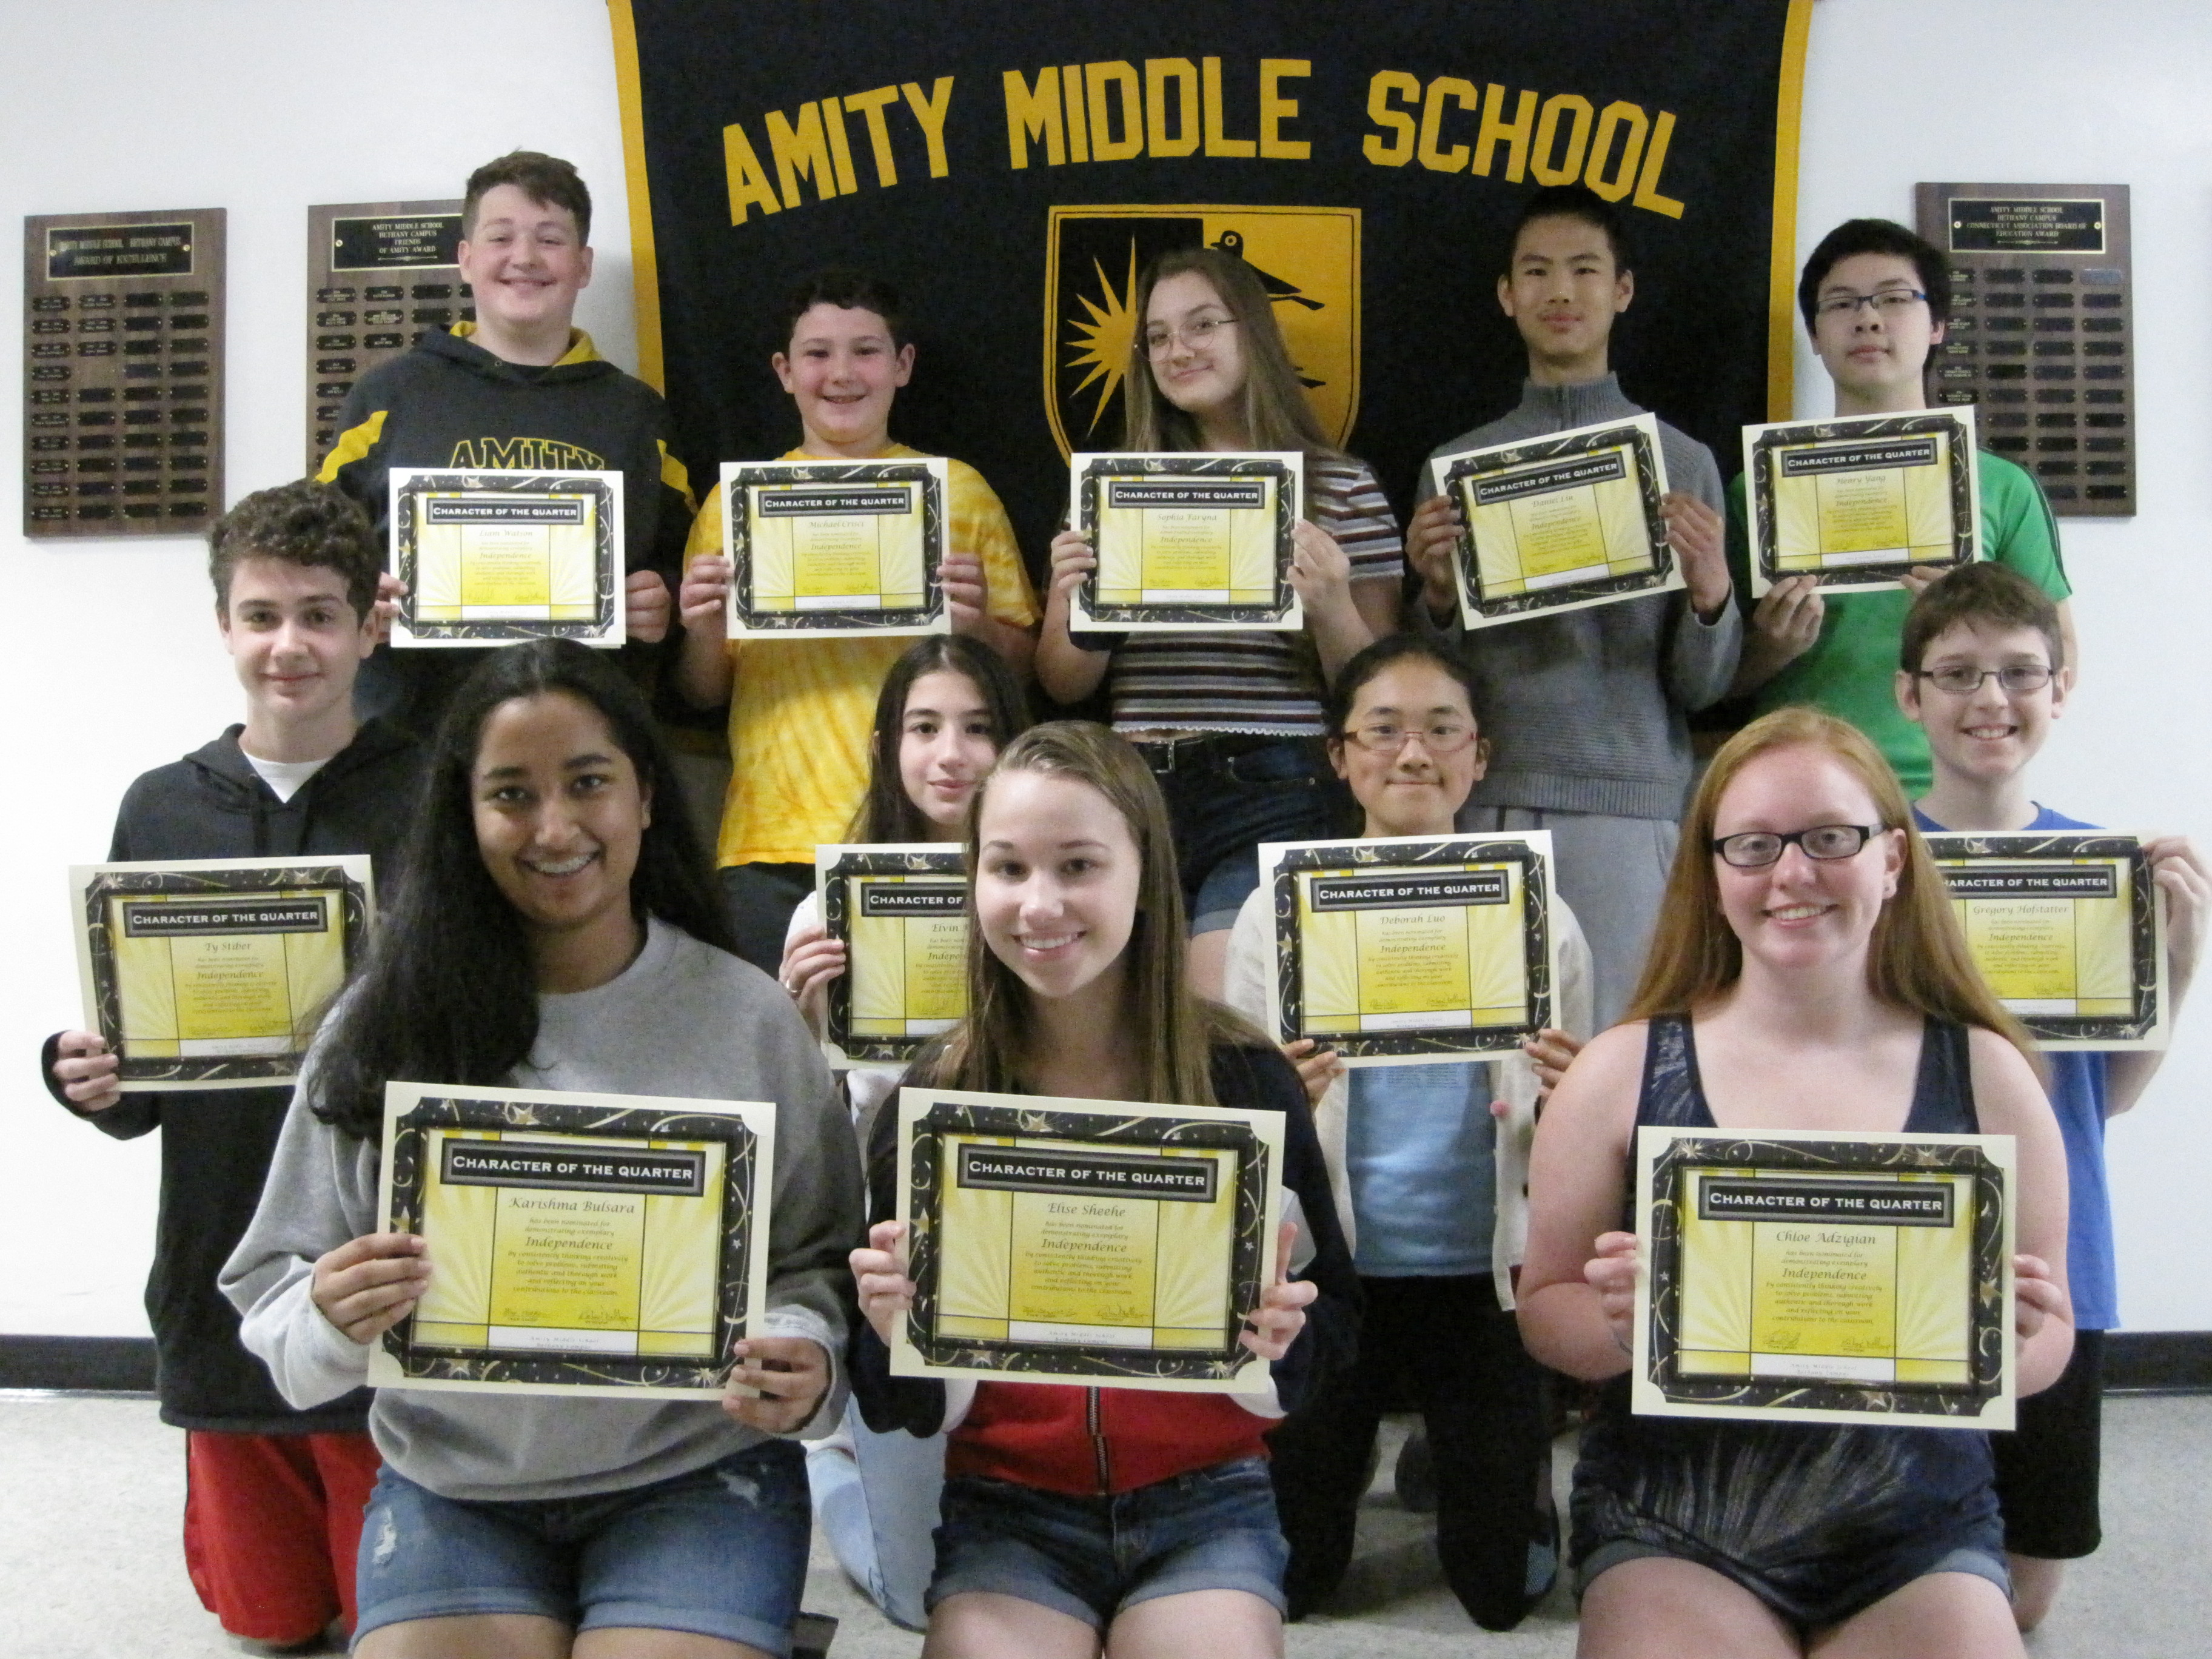 AMITY MIDDLE SCHOOL IN BETHANY Character of the 3rd Quarter Award